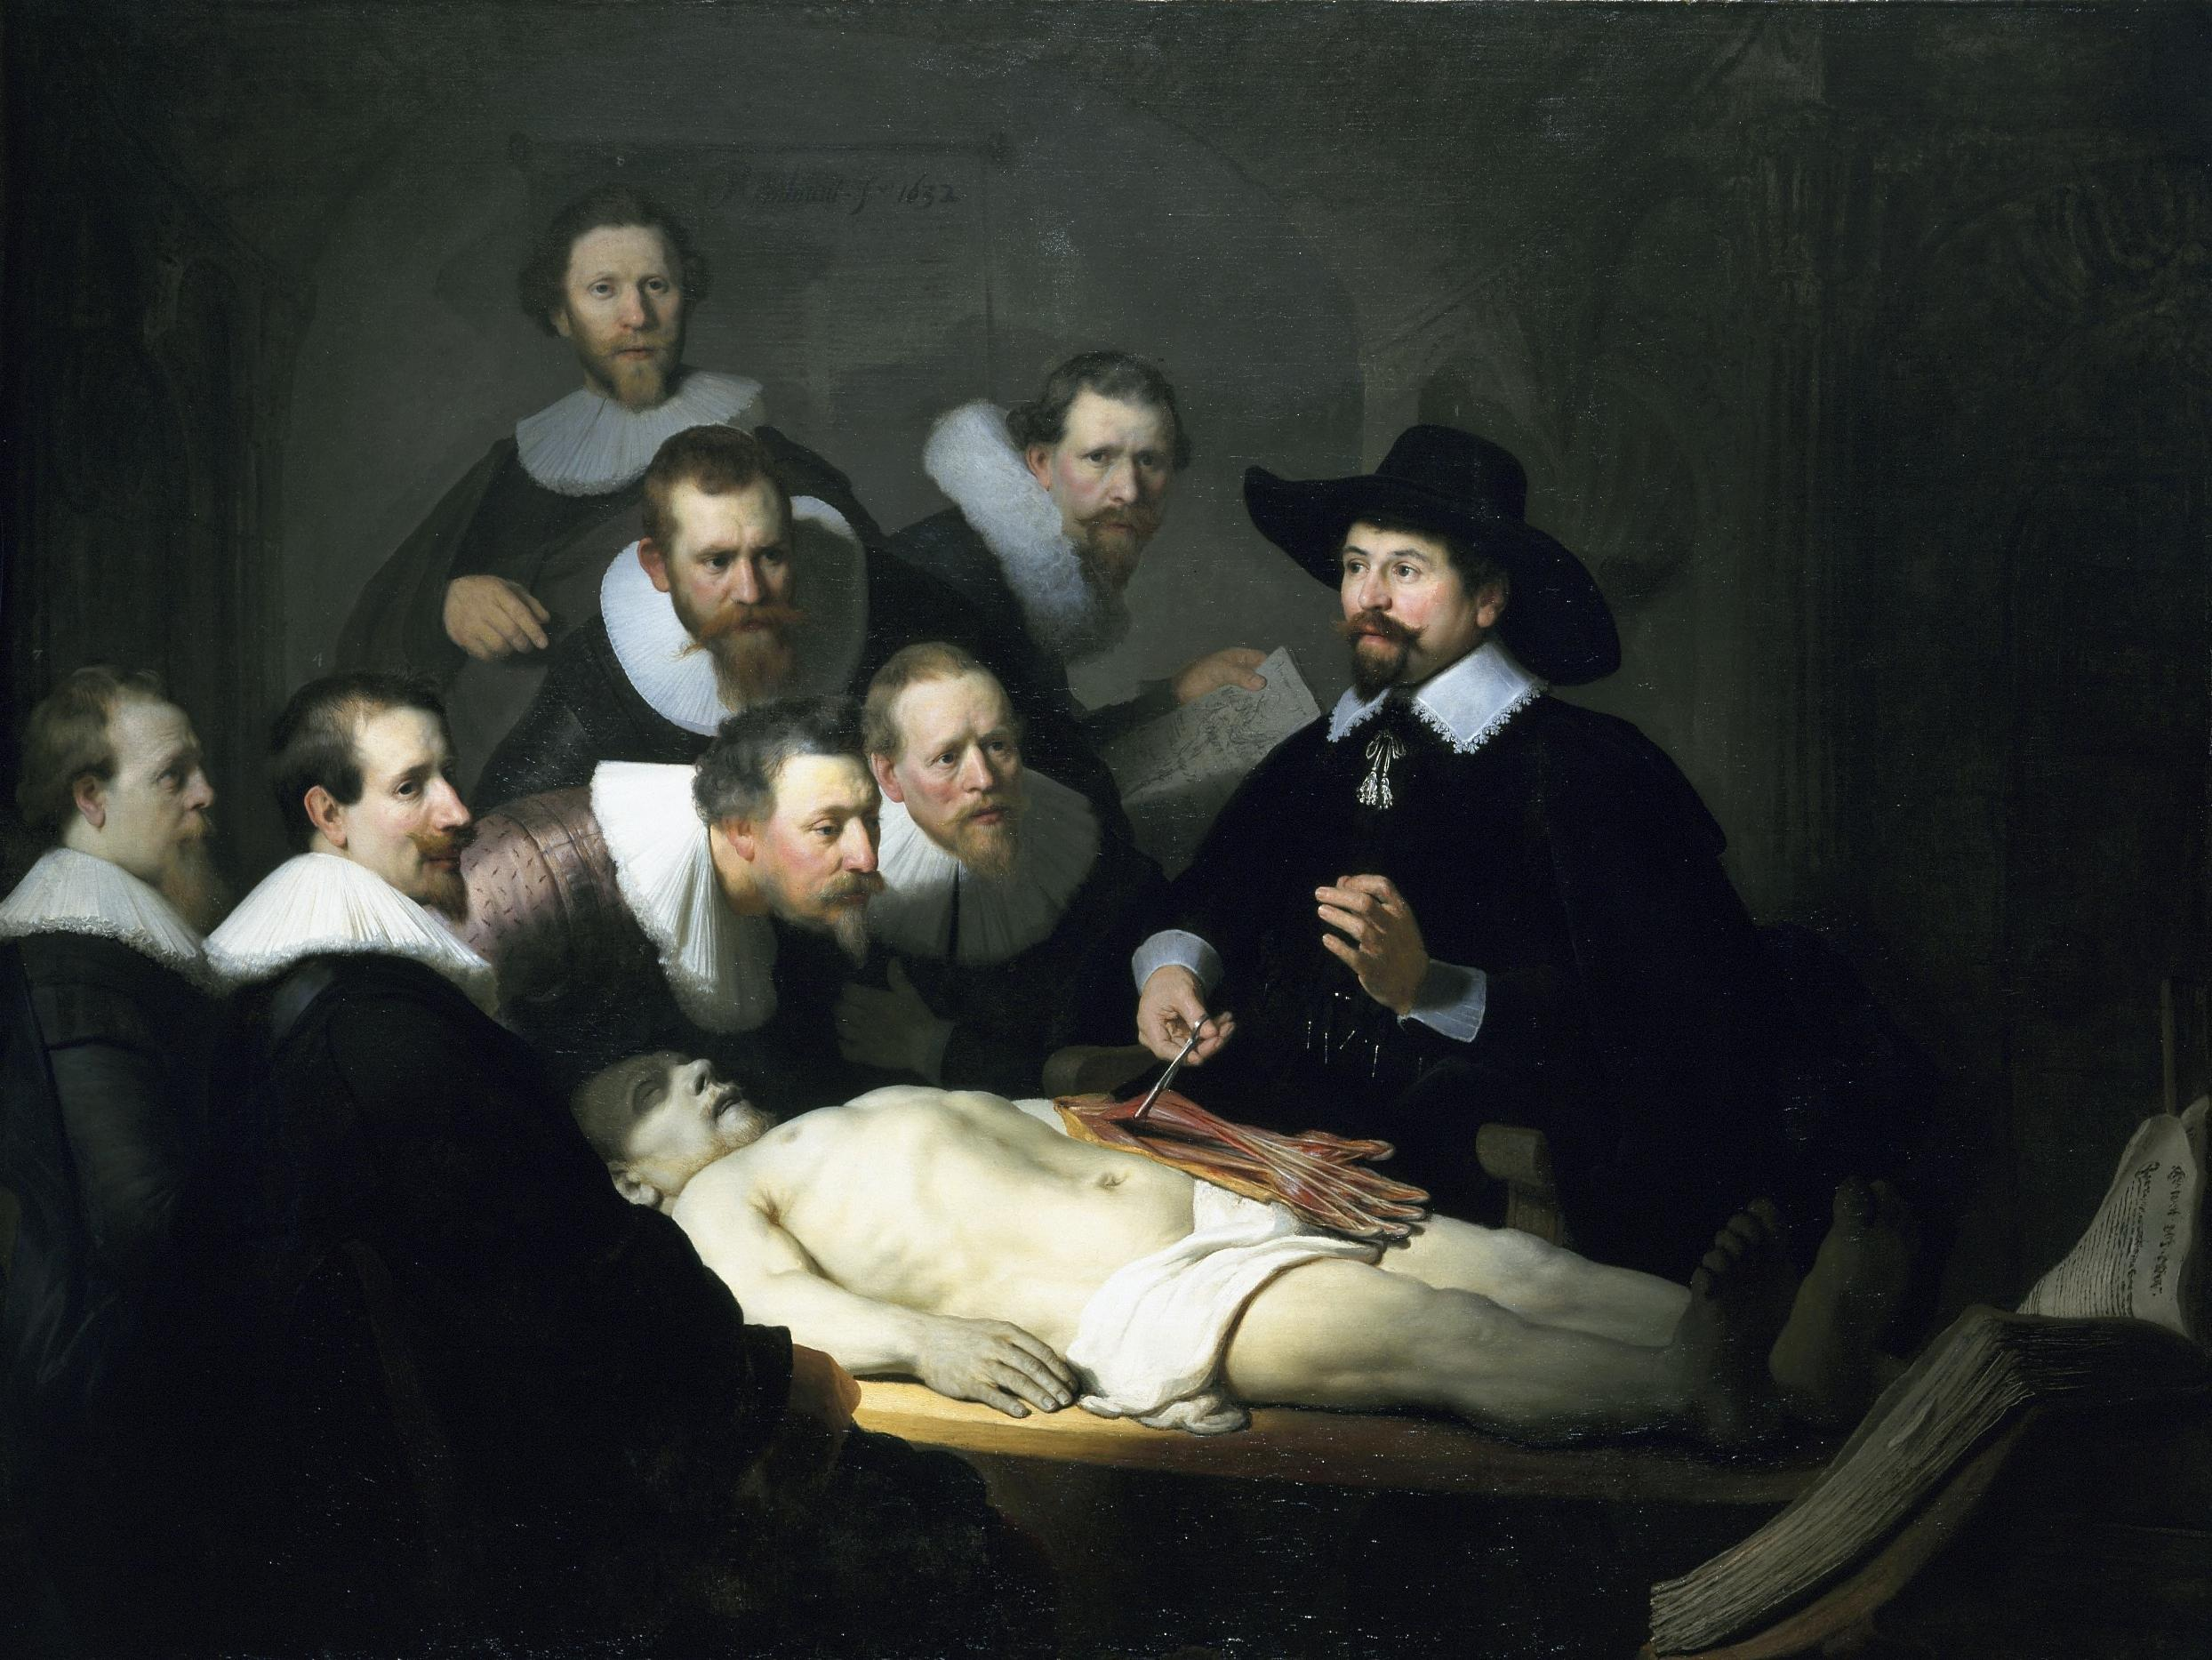 https://i0.wp.com/upload.wikimedia.org/wikipedia/commons/8/8c/The_Anatomy_Lesson.jpg